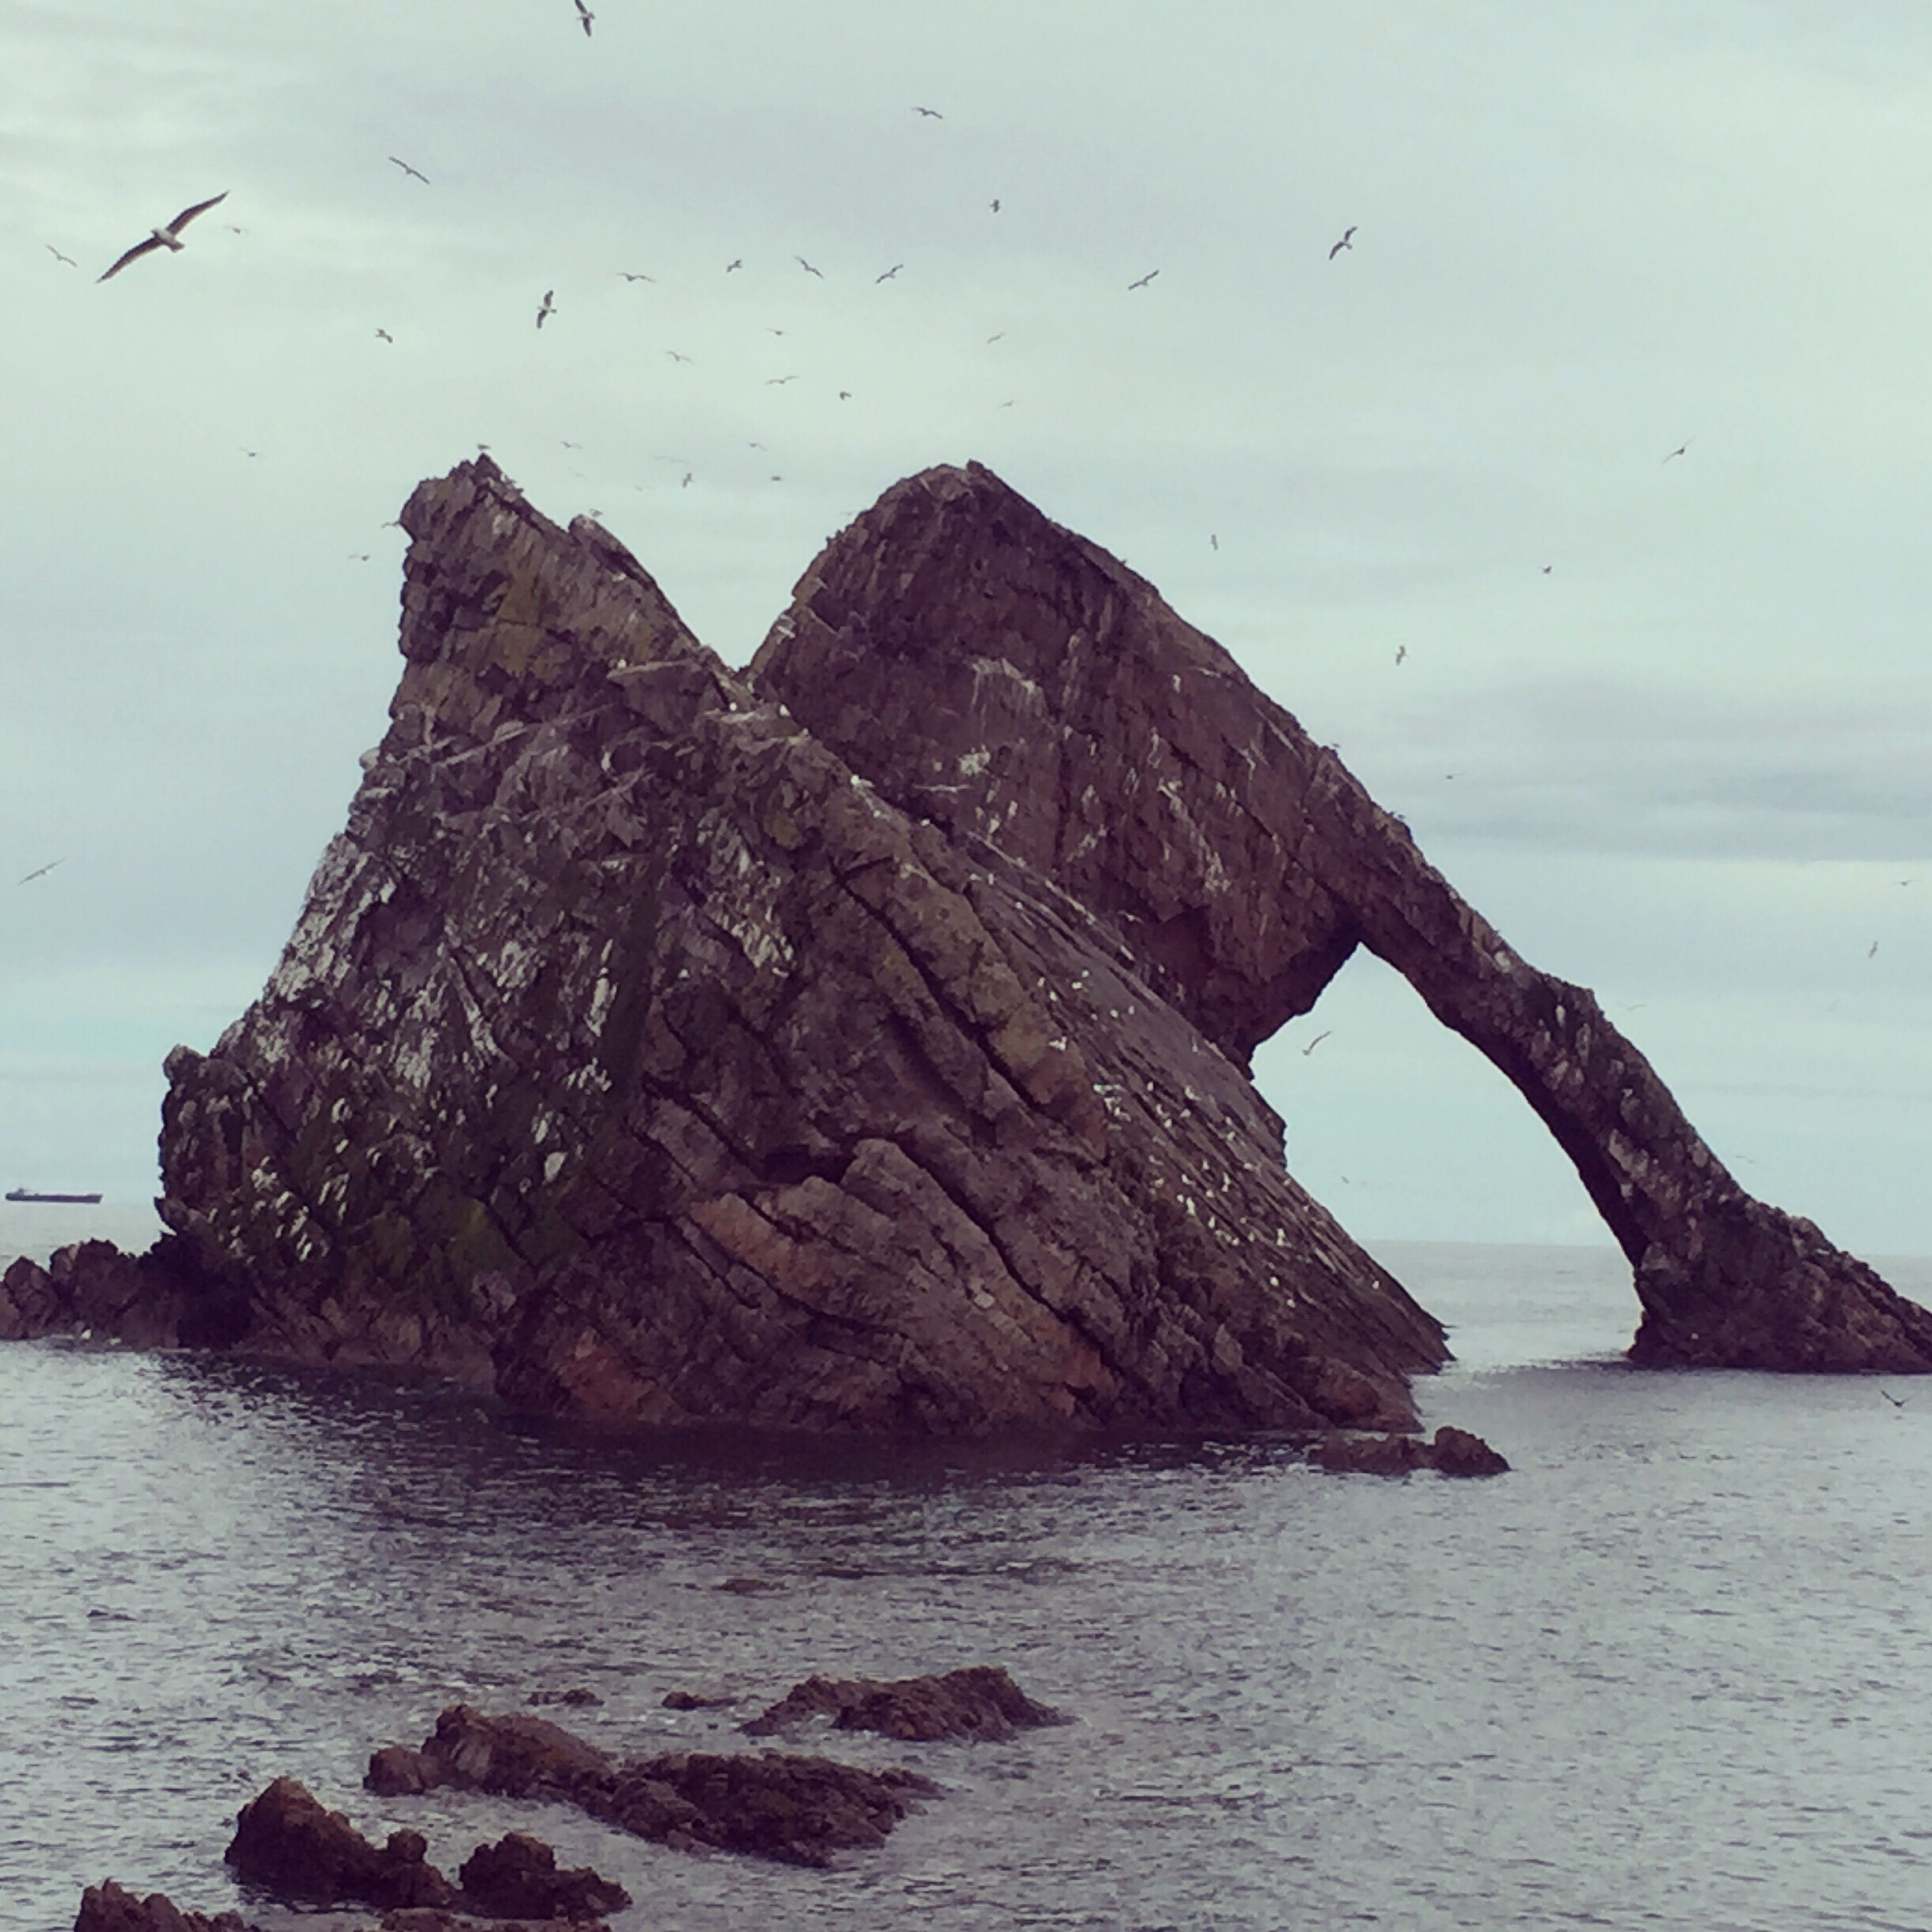 Bow fiddles rock Rock Formation Rock - Object Beauty In Nature Natural Landmark Coastal Feature Sea Bow Fiddle Rock,